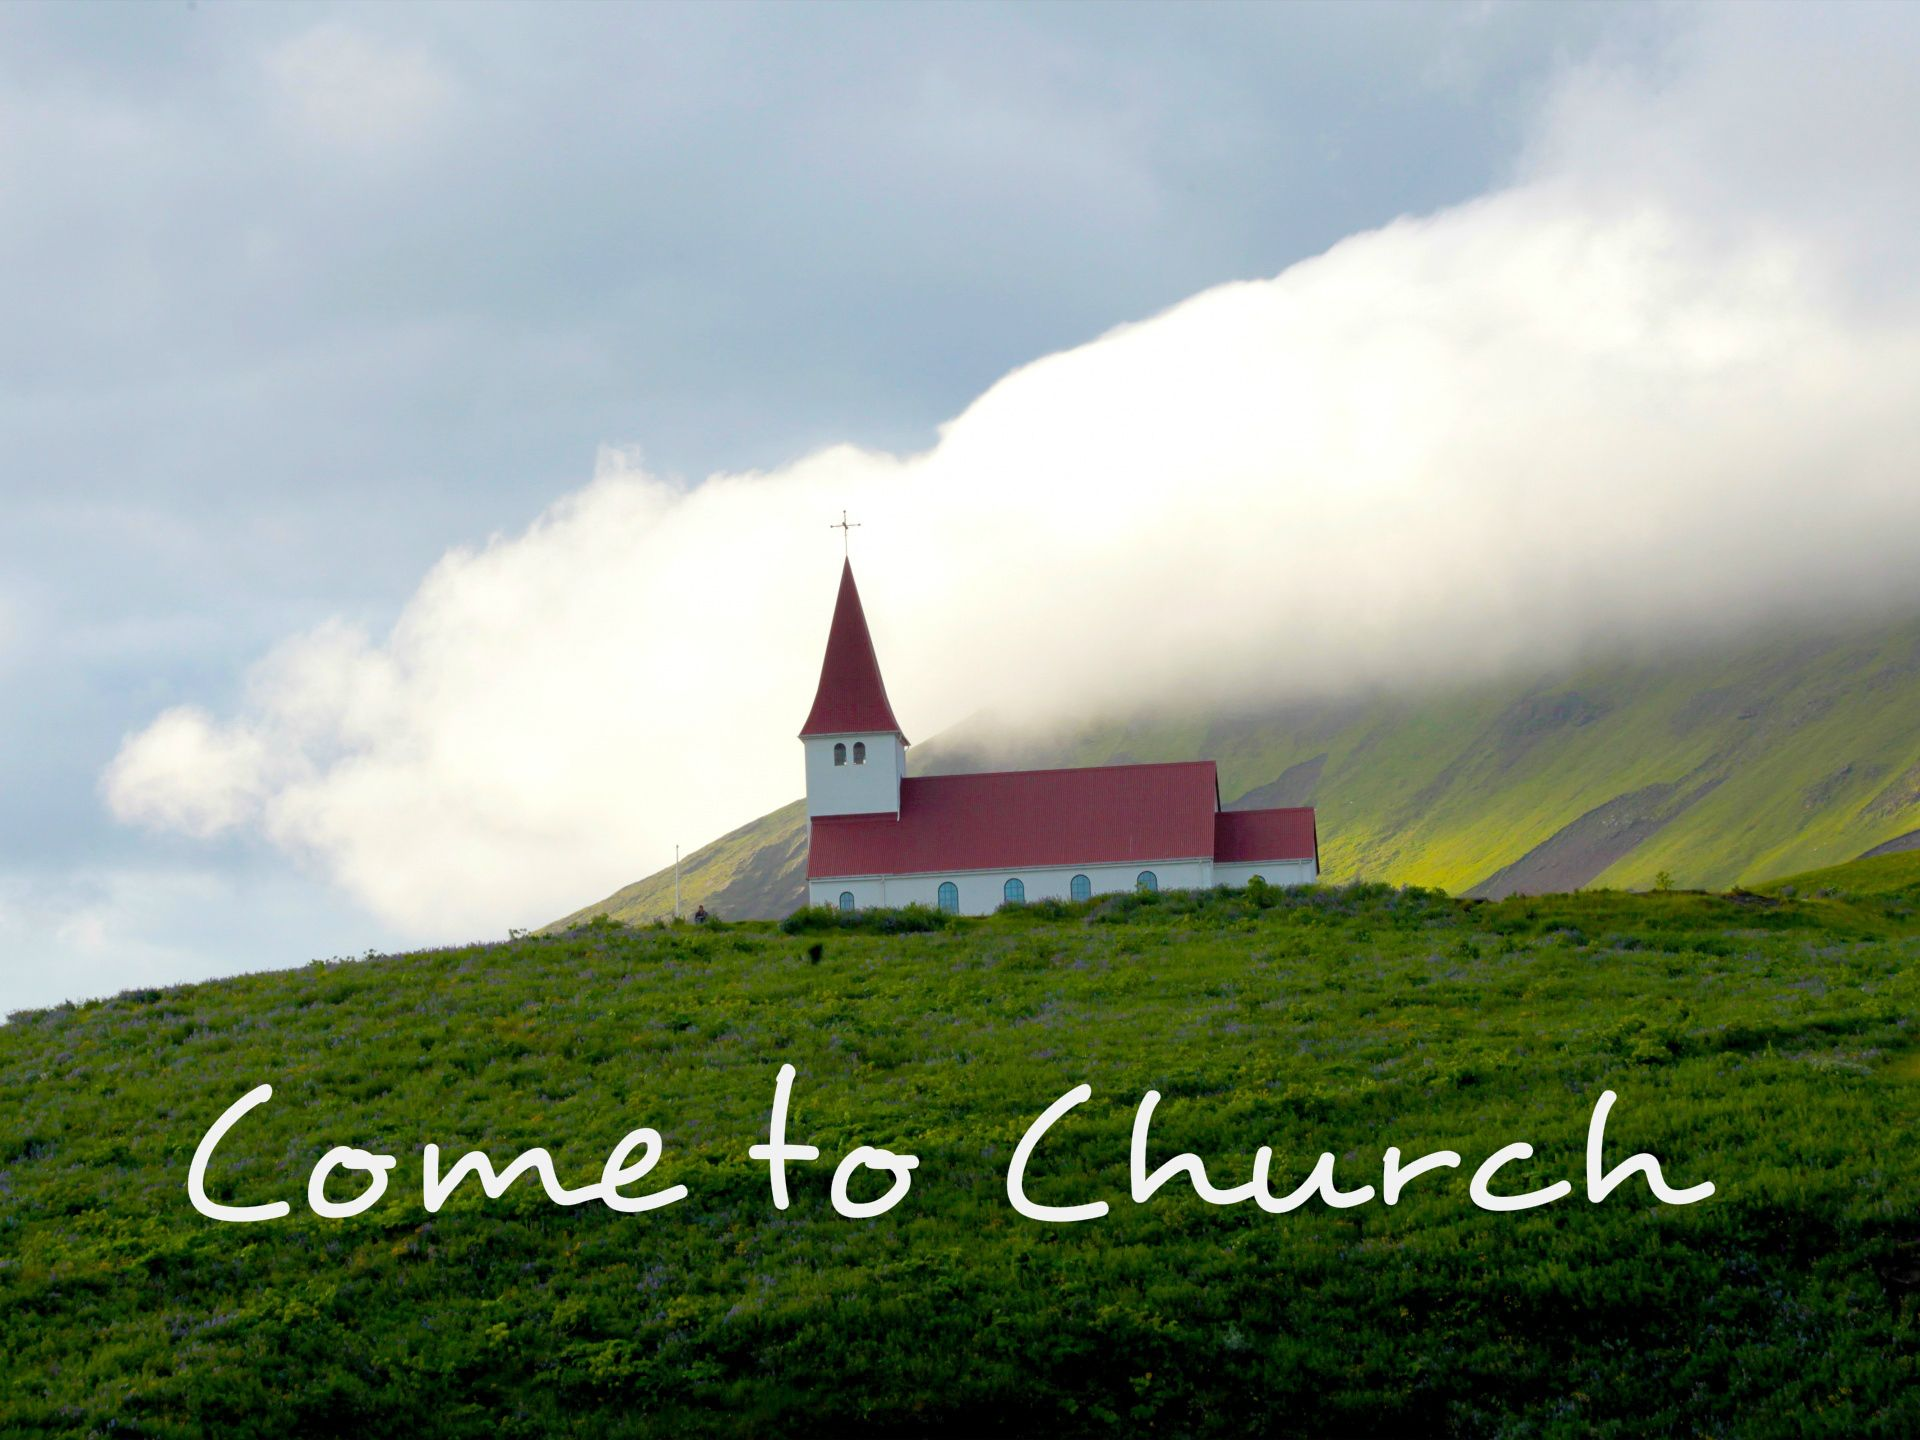 iceland church landscape hd wallpapers find the best iceland church landscape hd wallpapers for your computers laptops and mobiles desktop background